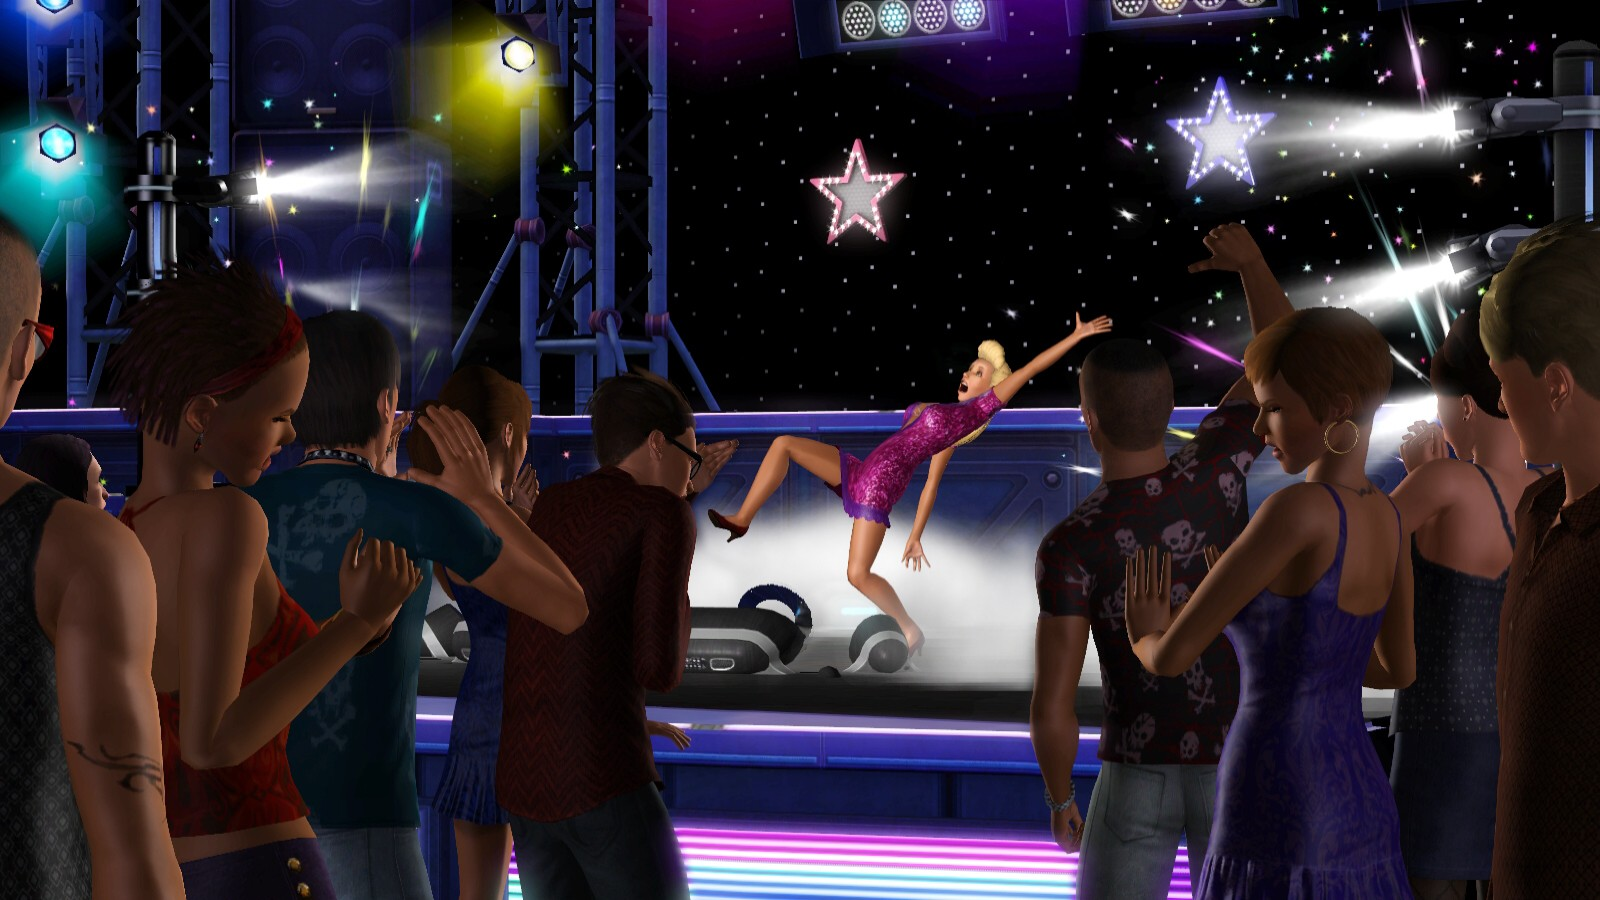 sims 3 showtime dating The official site of the showtime original series polyamory find out about new episodes, watch previews, go behind the scenes and more.